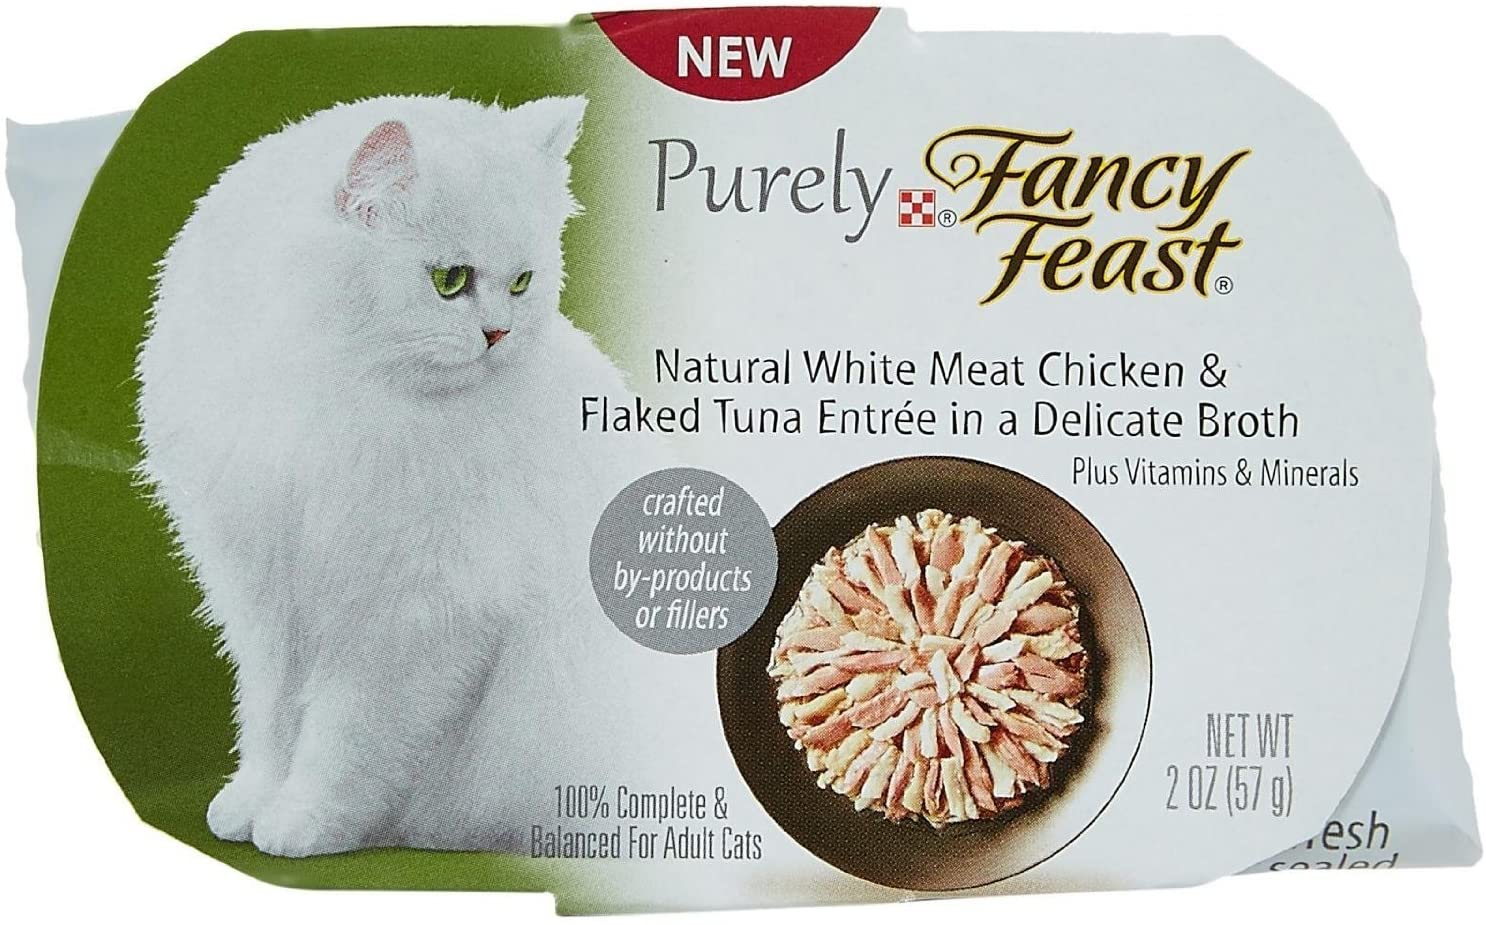 Pack of 10, 2 OZ, Natural White Meat Chicken and Flaked Tuna Cat Food